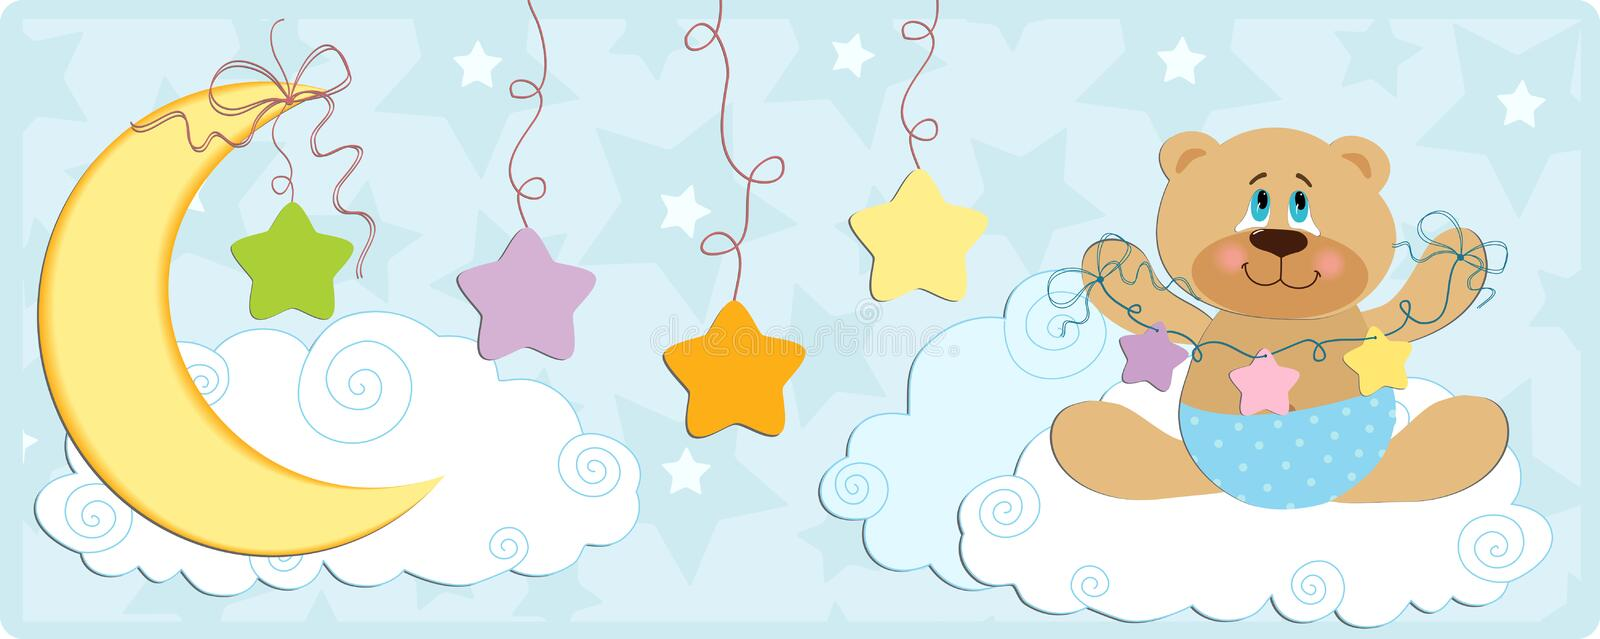 Baby's banner with bear in blue colors royalty free illustration